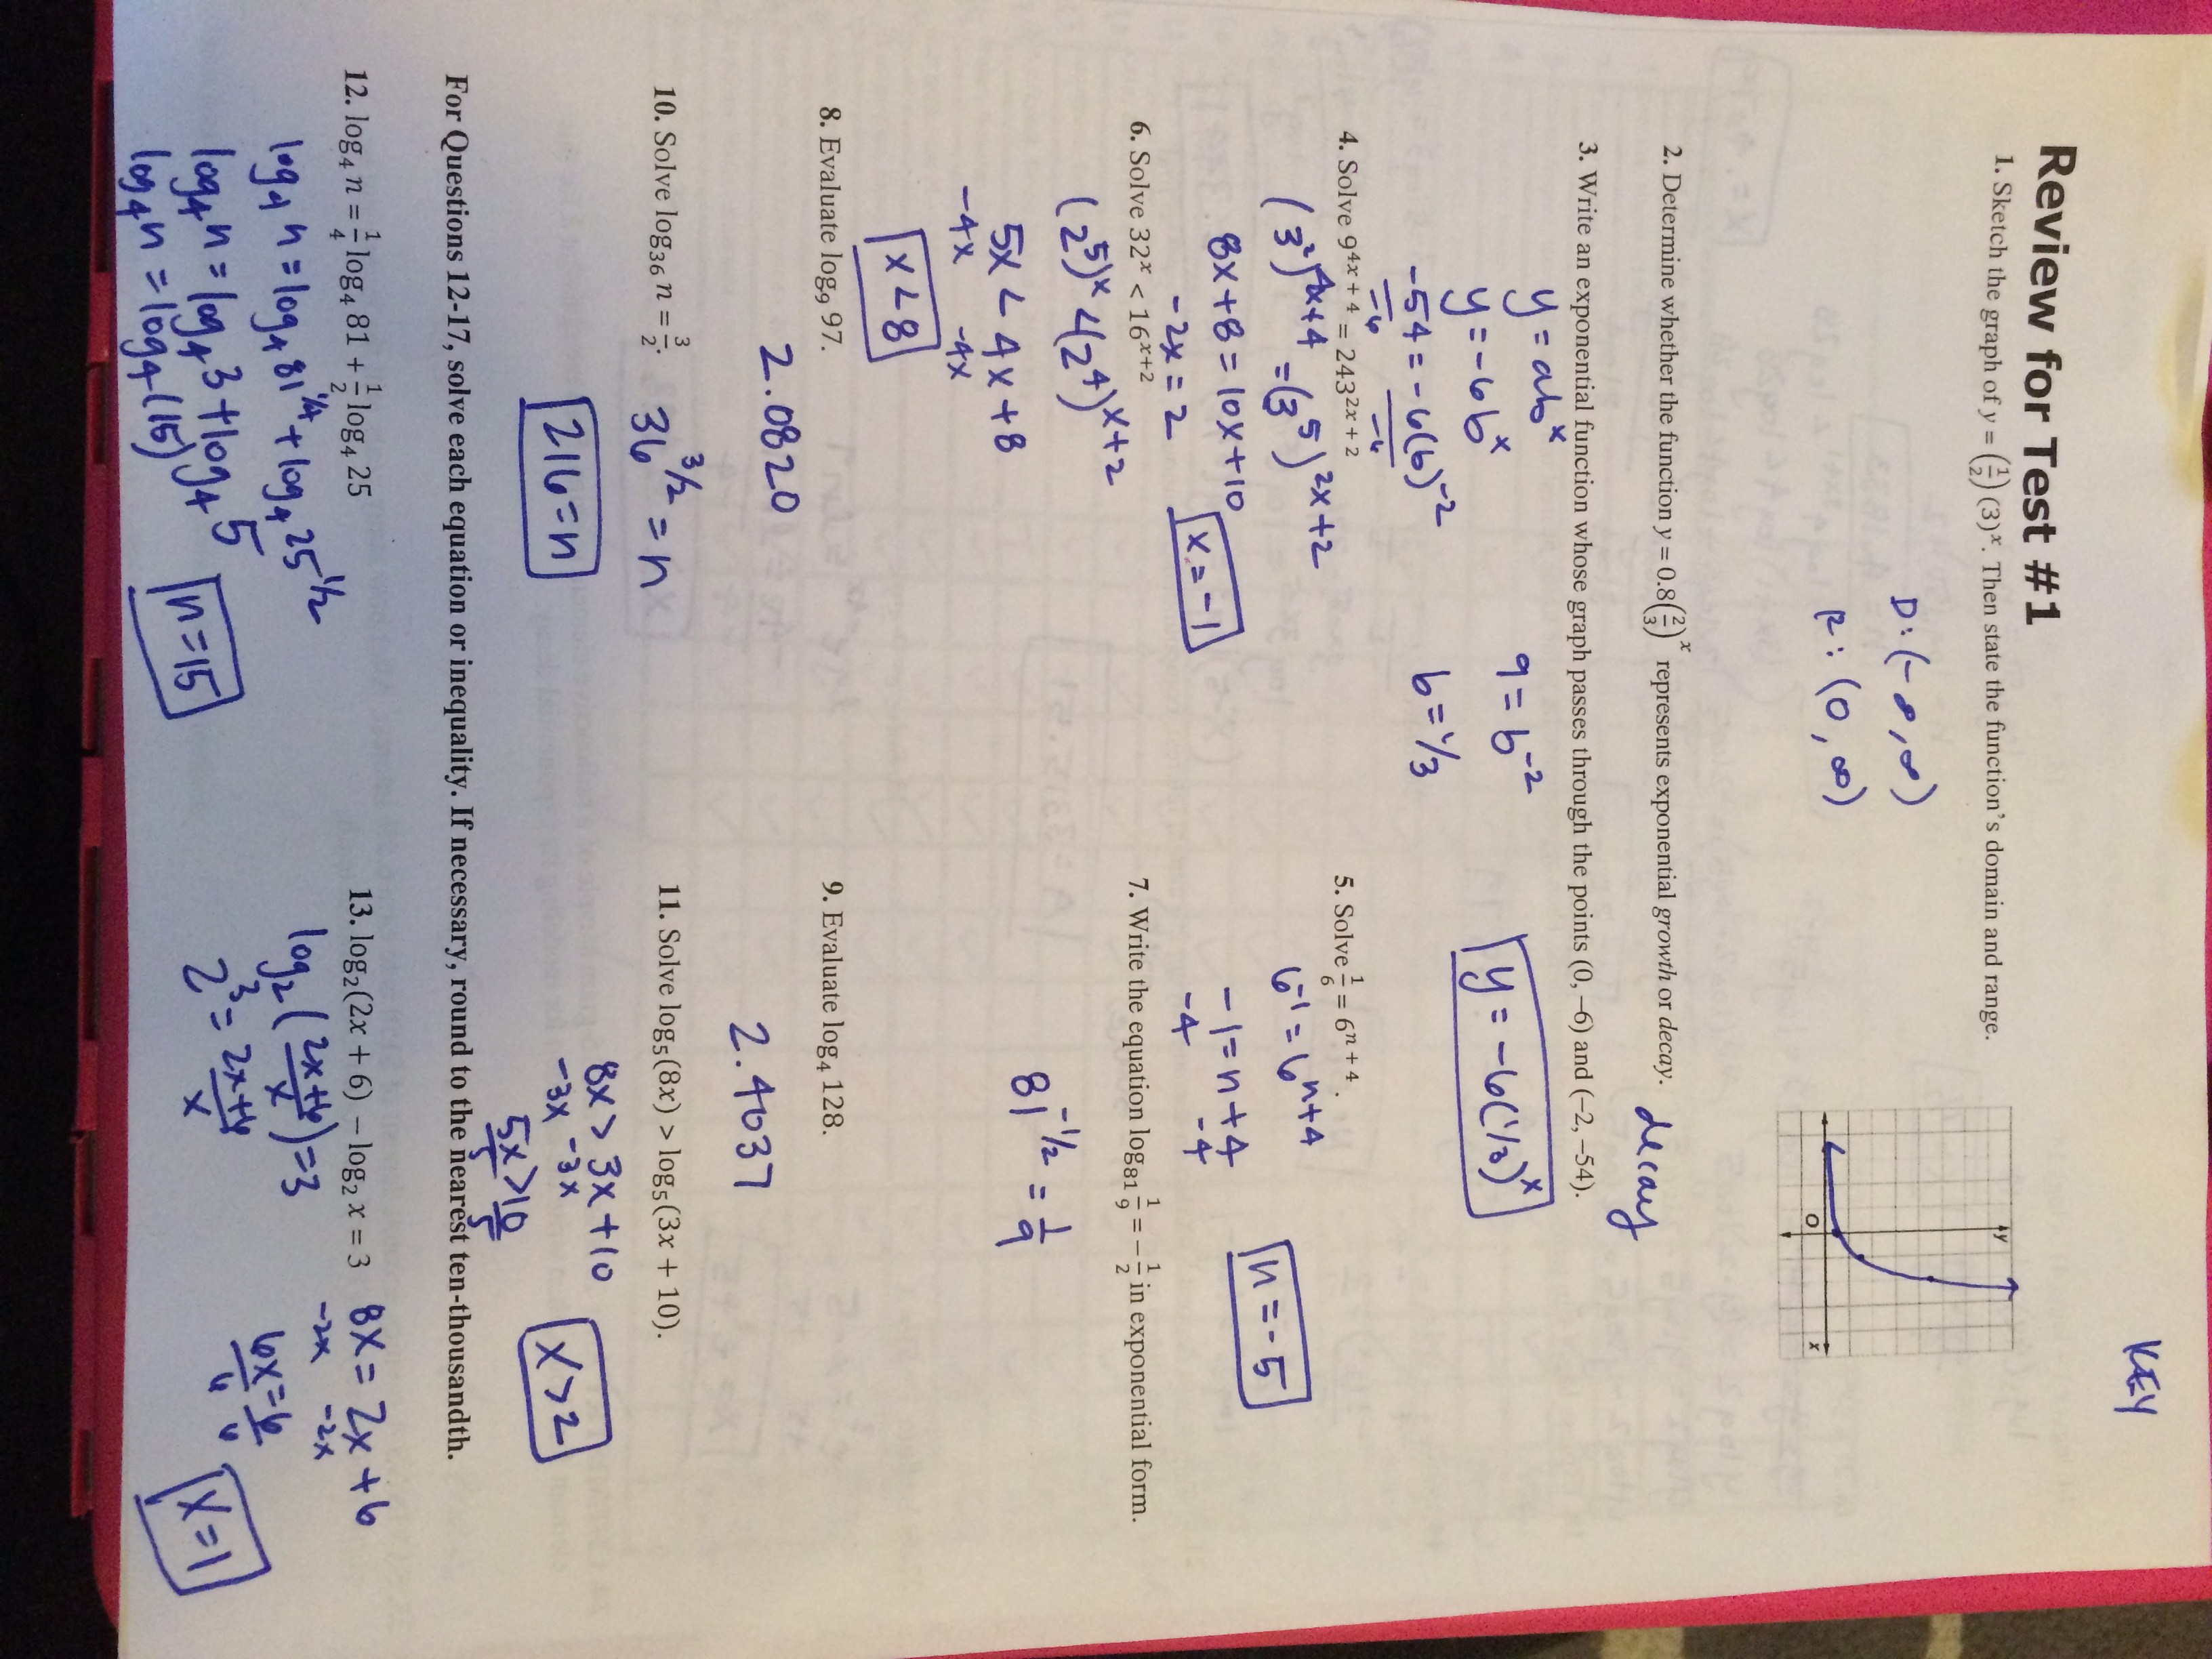 worksheet Solving Exponential And Logarithmic Functions Worksheet Answers akins high school test 5 1 review answers part 1